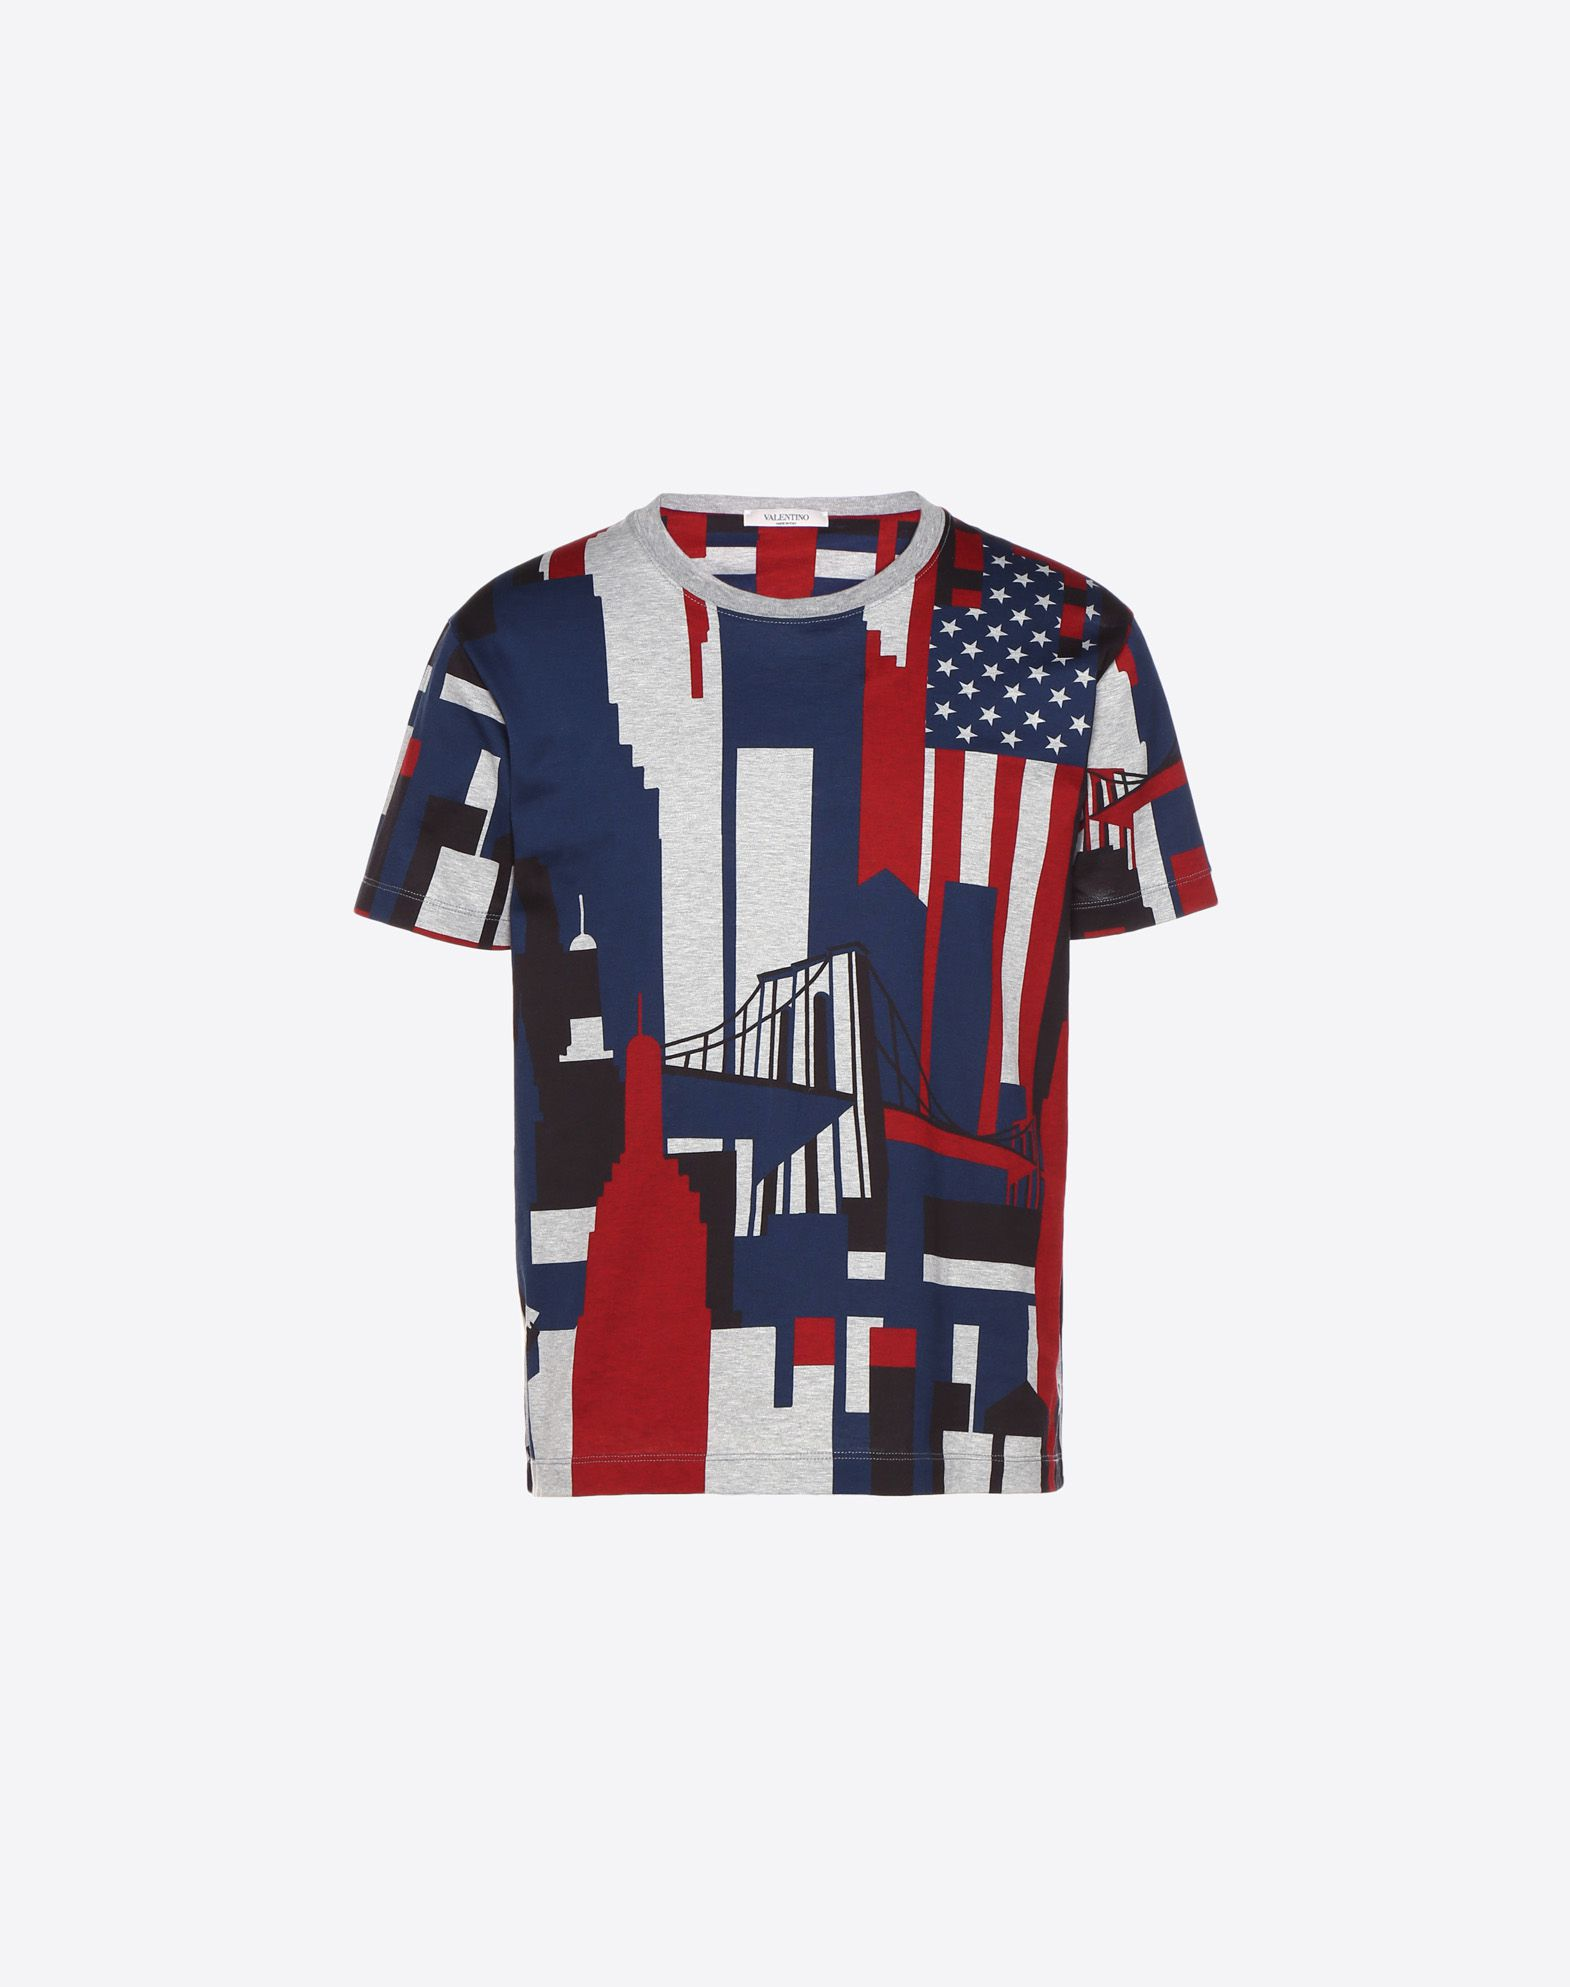 VALENTINO CAMOU CITIES PRINTED T-SHIRT